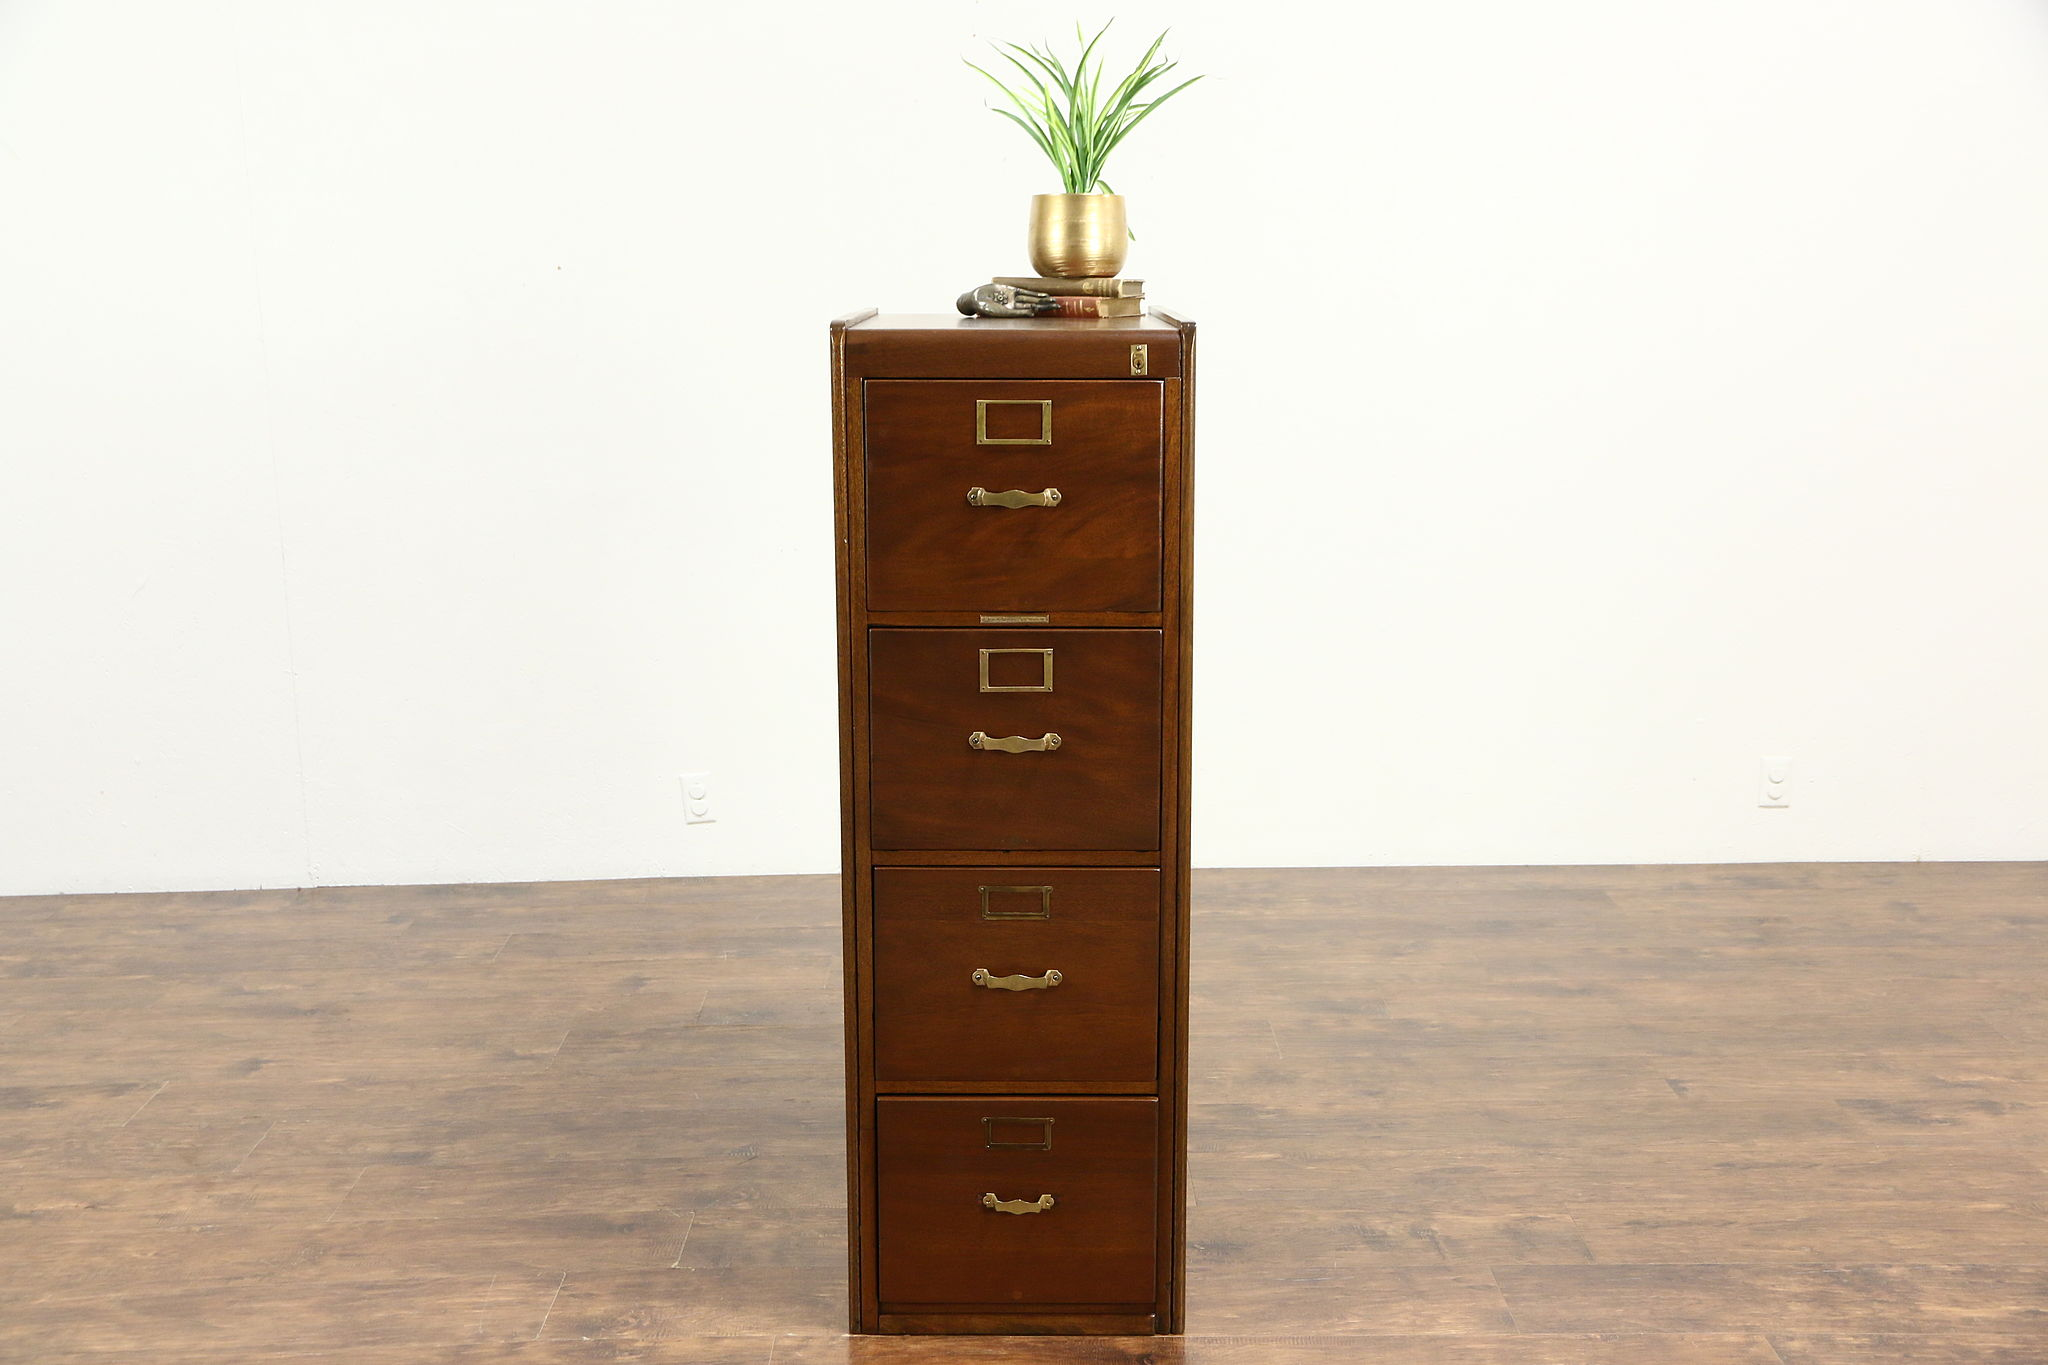 Genial Library Bureau 1915 Antique Mahogany 4 Drawer File Cabinet